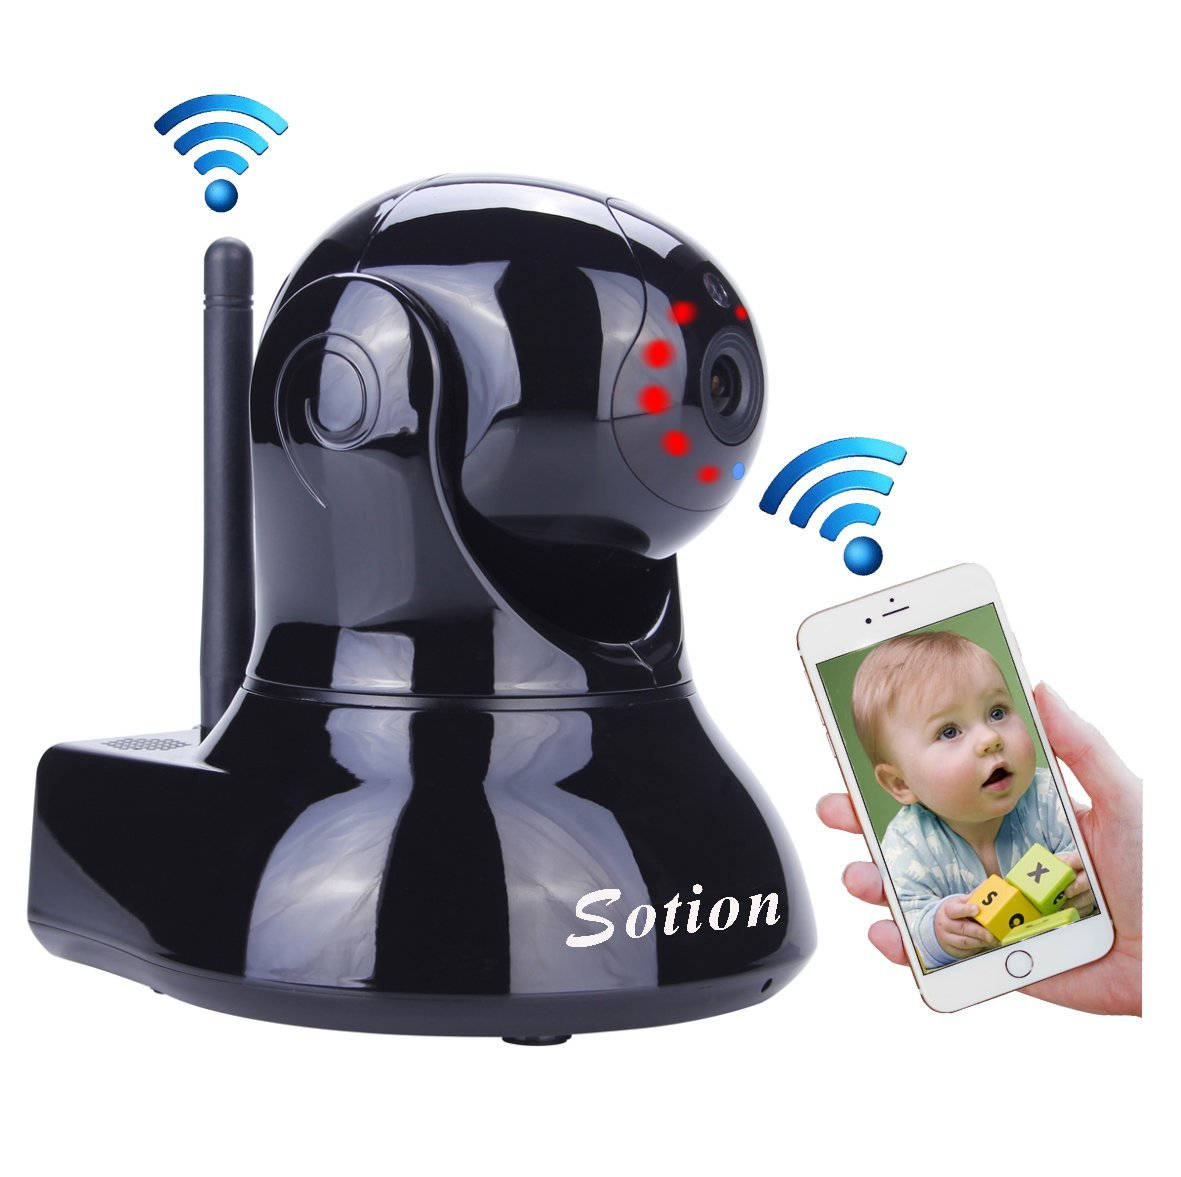 Baby Monitor, Remote Video Baby Monitor with Camera, Two Way Talk, Night Vision and Motion Detection. Pet Camera, Wireless WiFi Surveillance Security Camera with Pan and Tilt for Home and Business